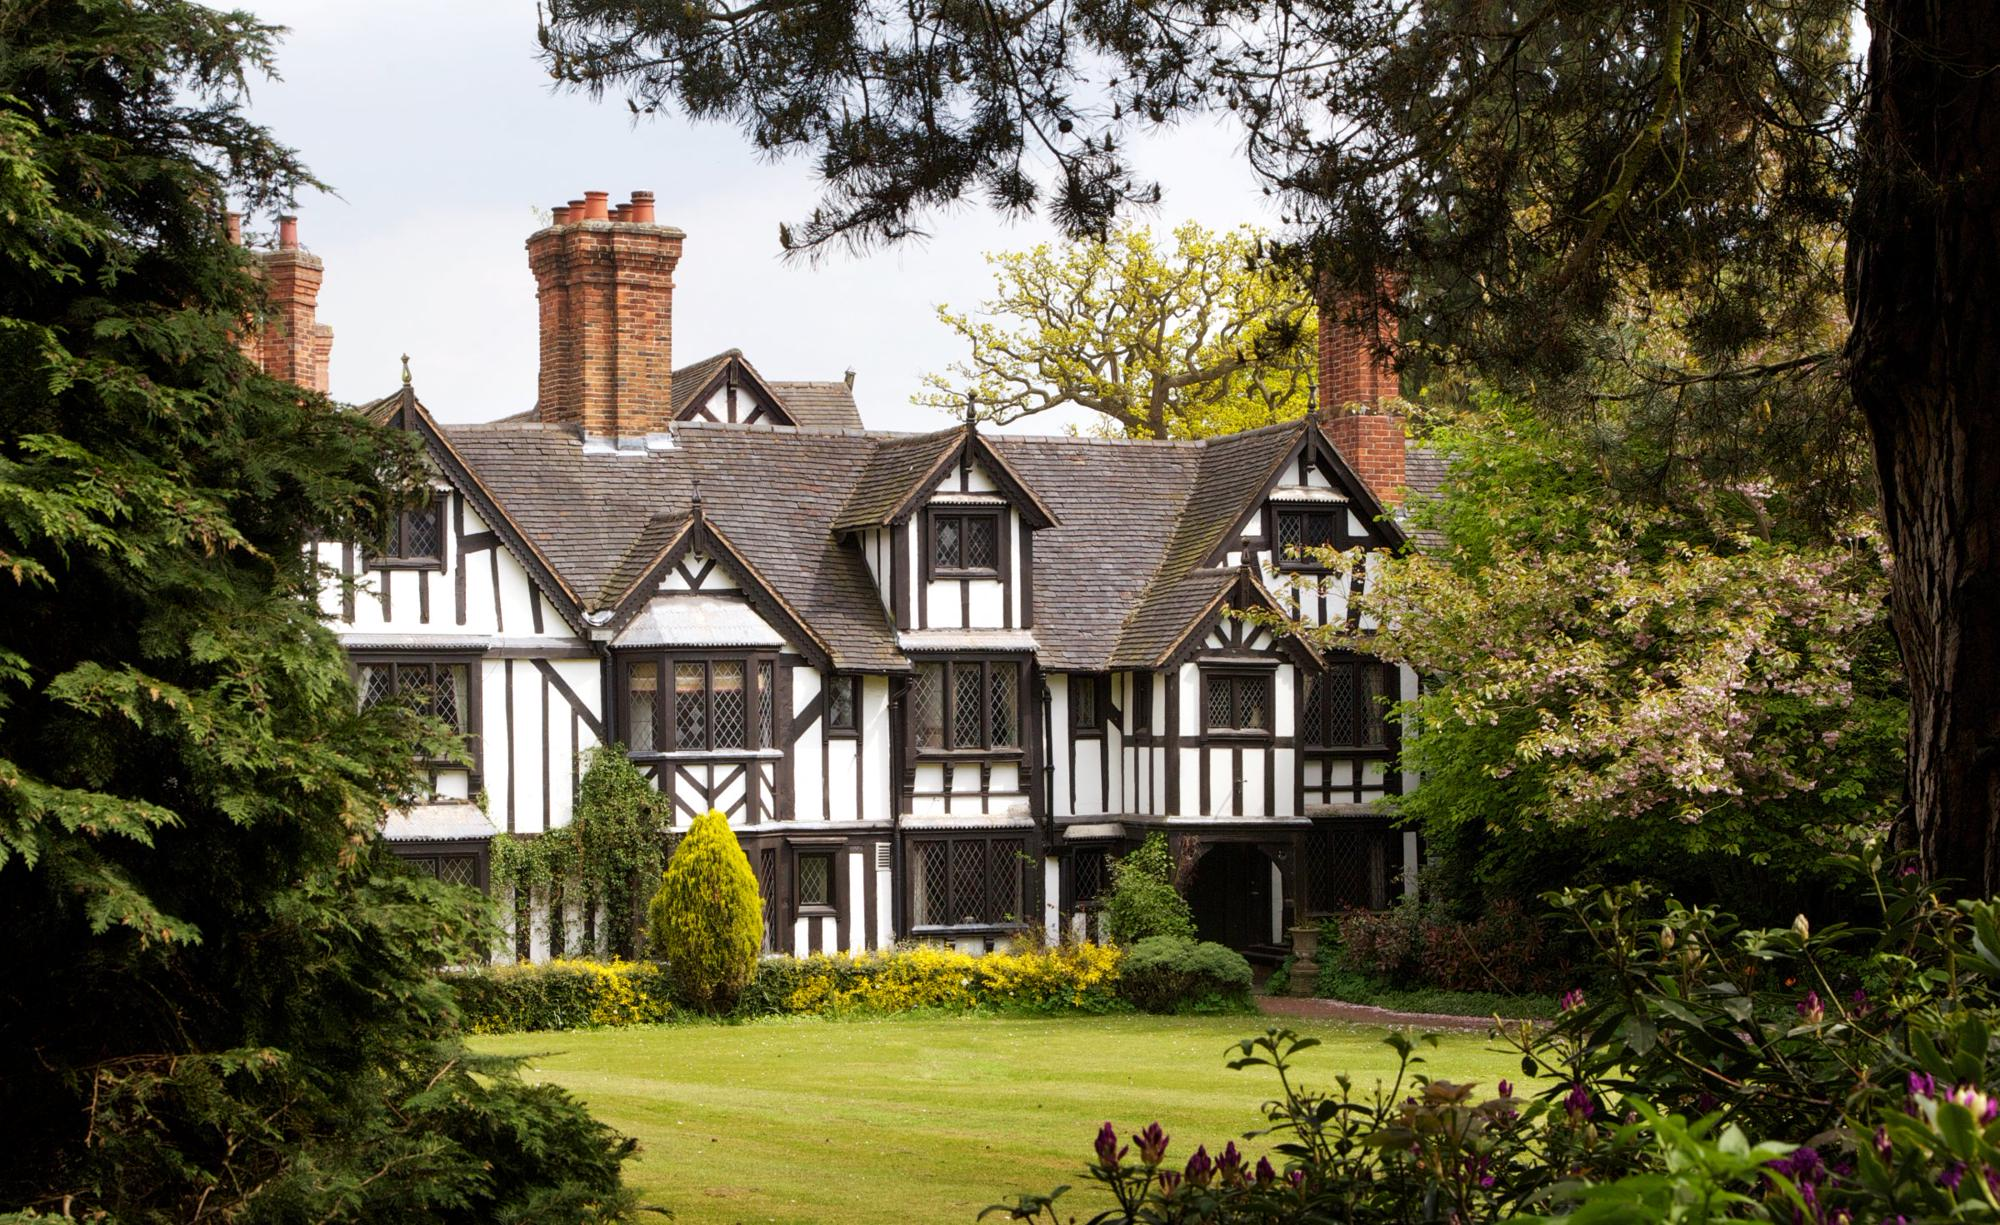 Hotels in Kenilworth holidays at Cool Places